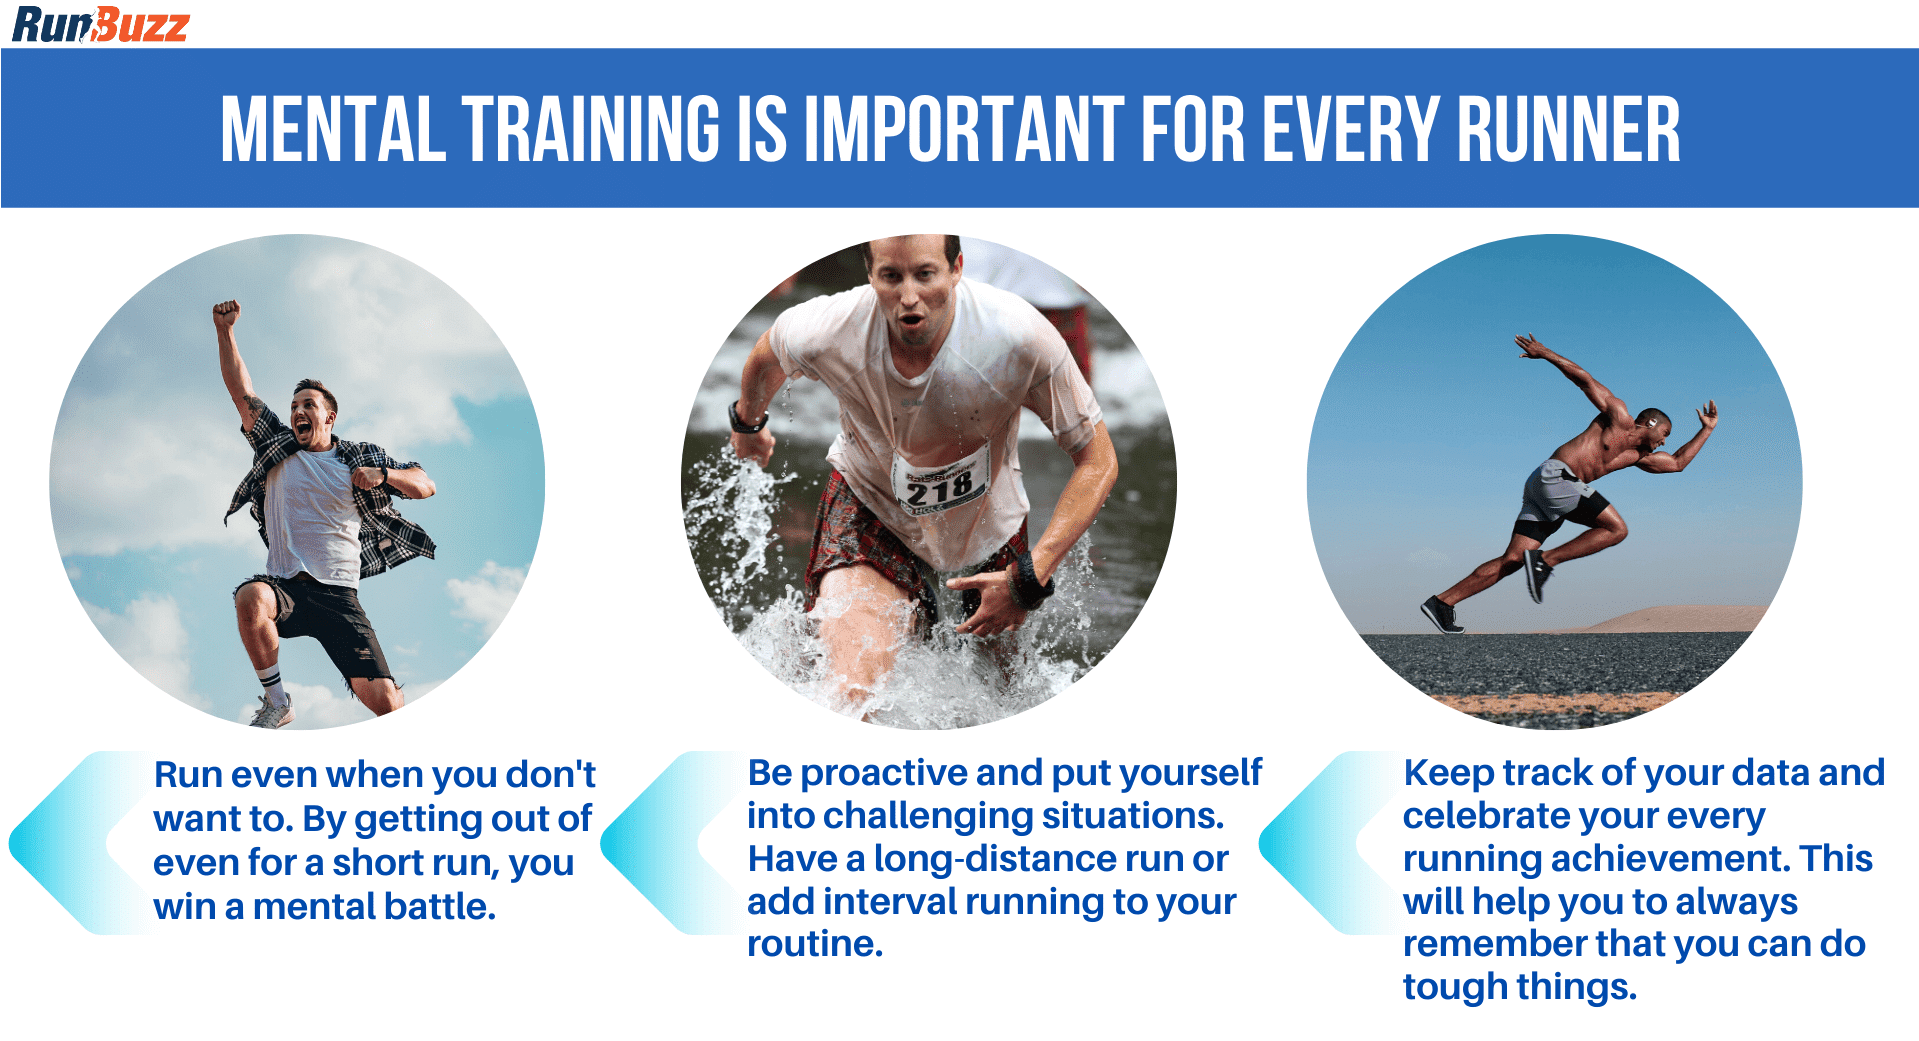 MENTAL-TRAINING-IS-IMPORTANT-FOR-EVERY-RUNNER